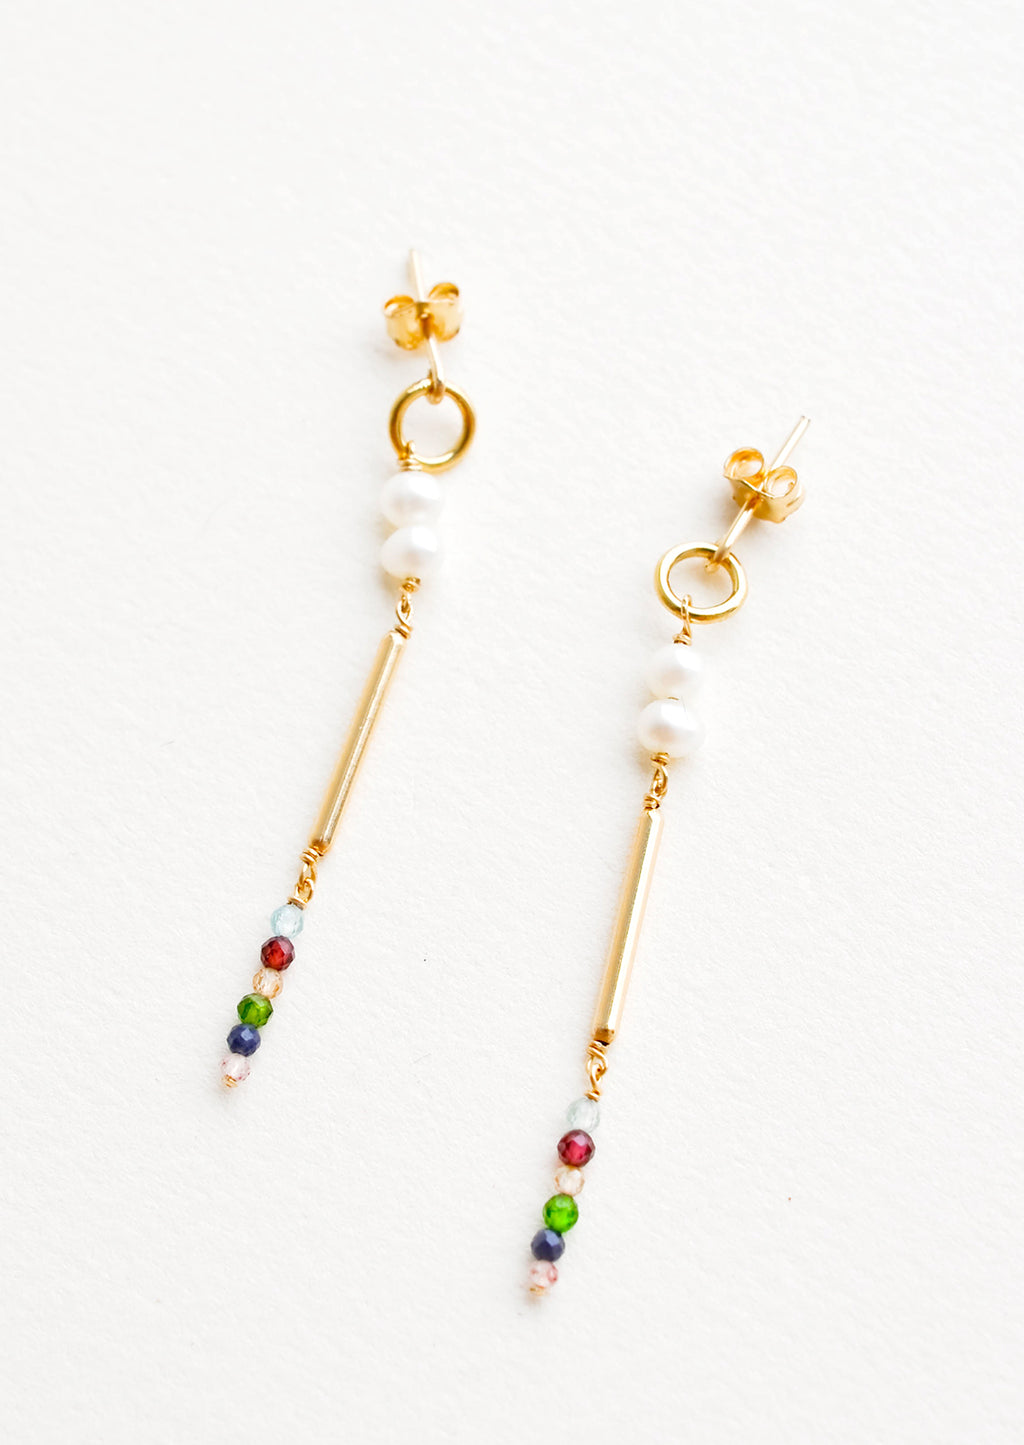 1: Dangling earrings featuring a small circle, two pearl beads, a gold post and six small multicolor gemstones on a yellow gold post back.